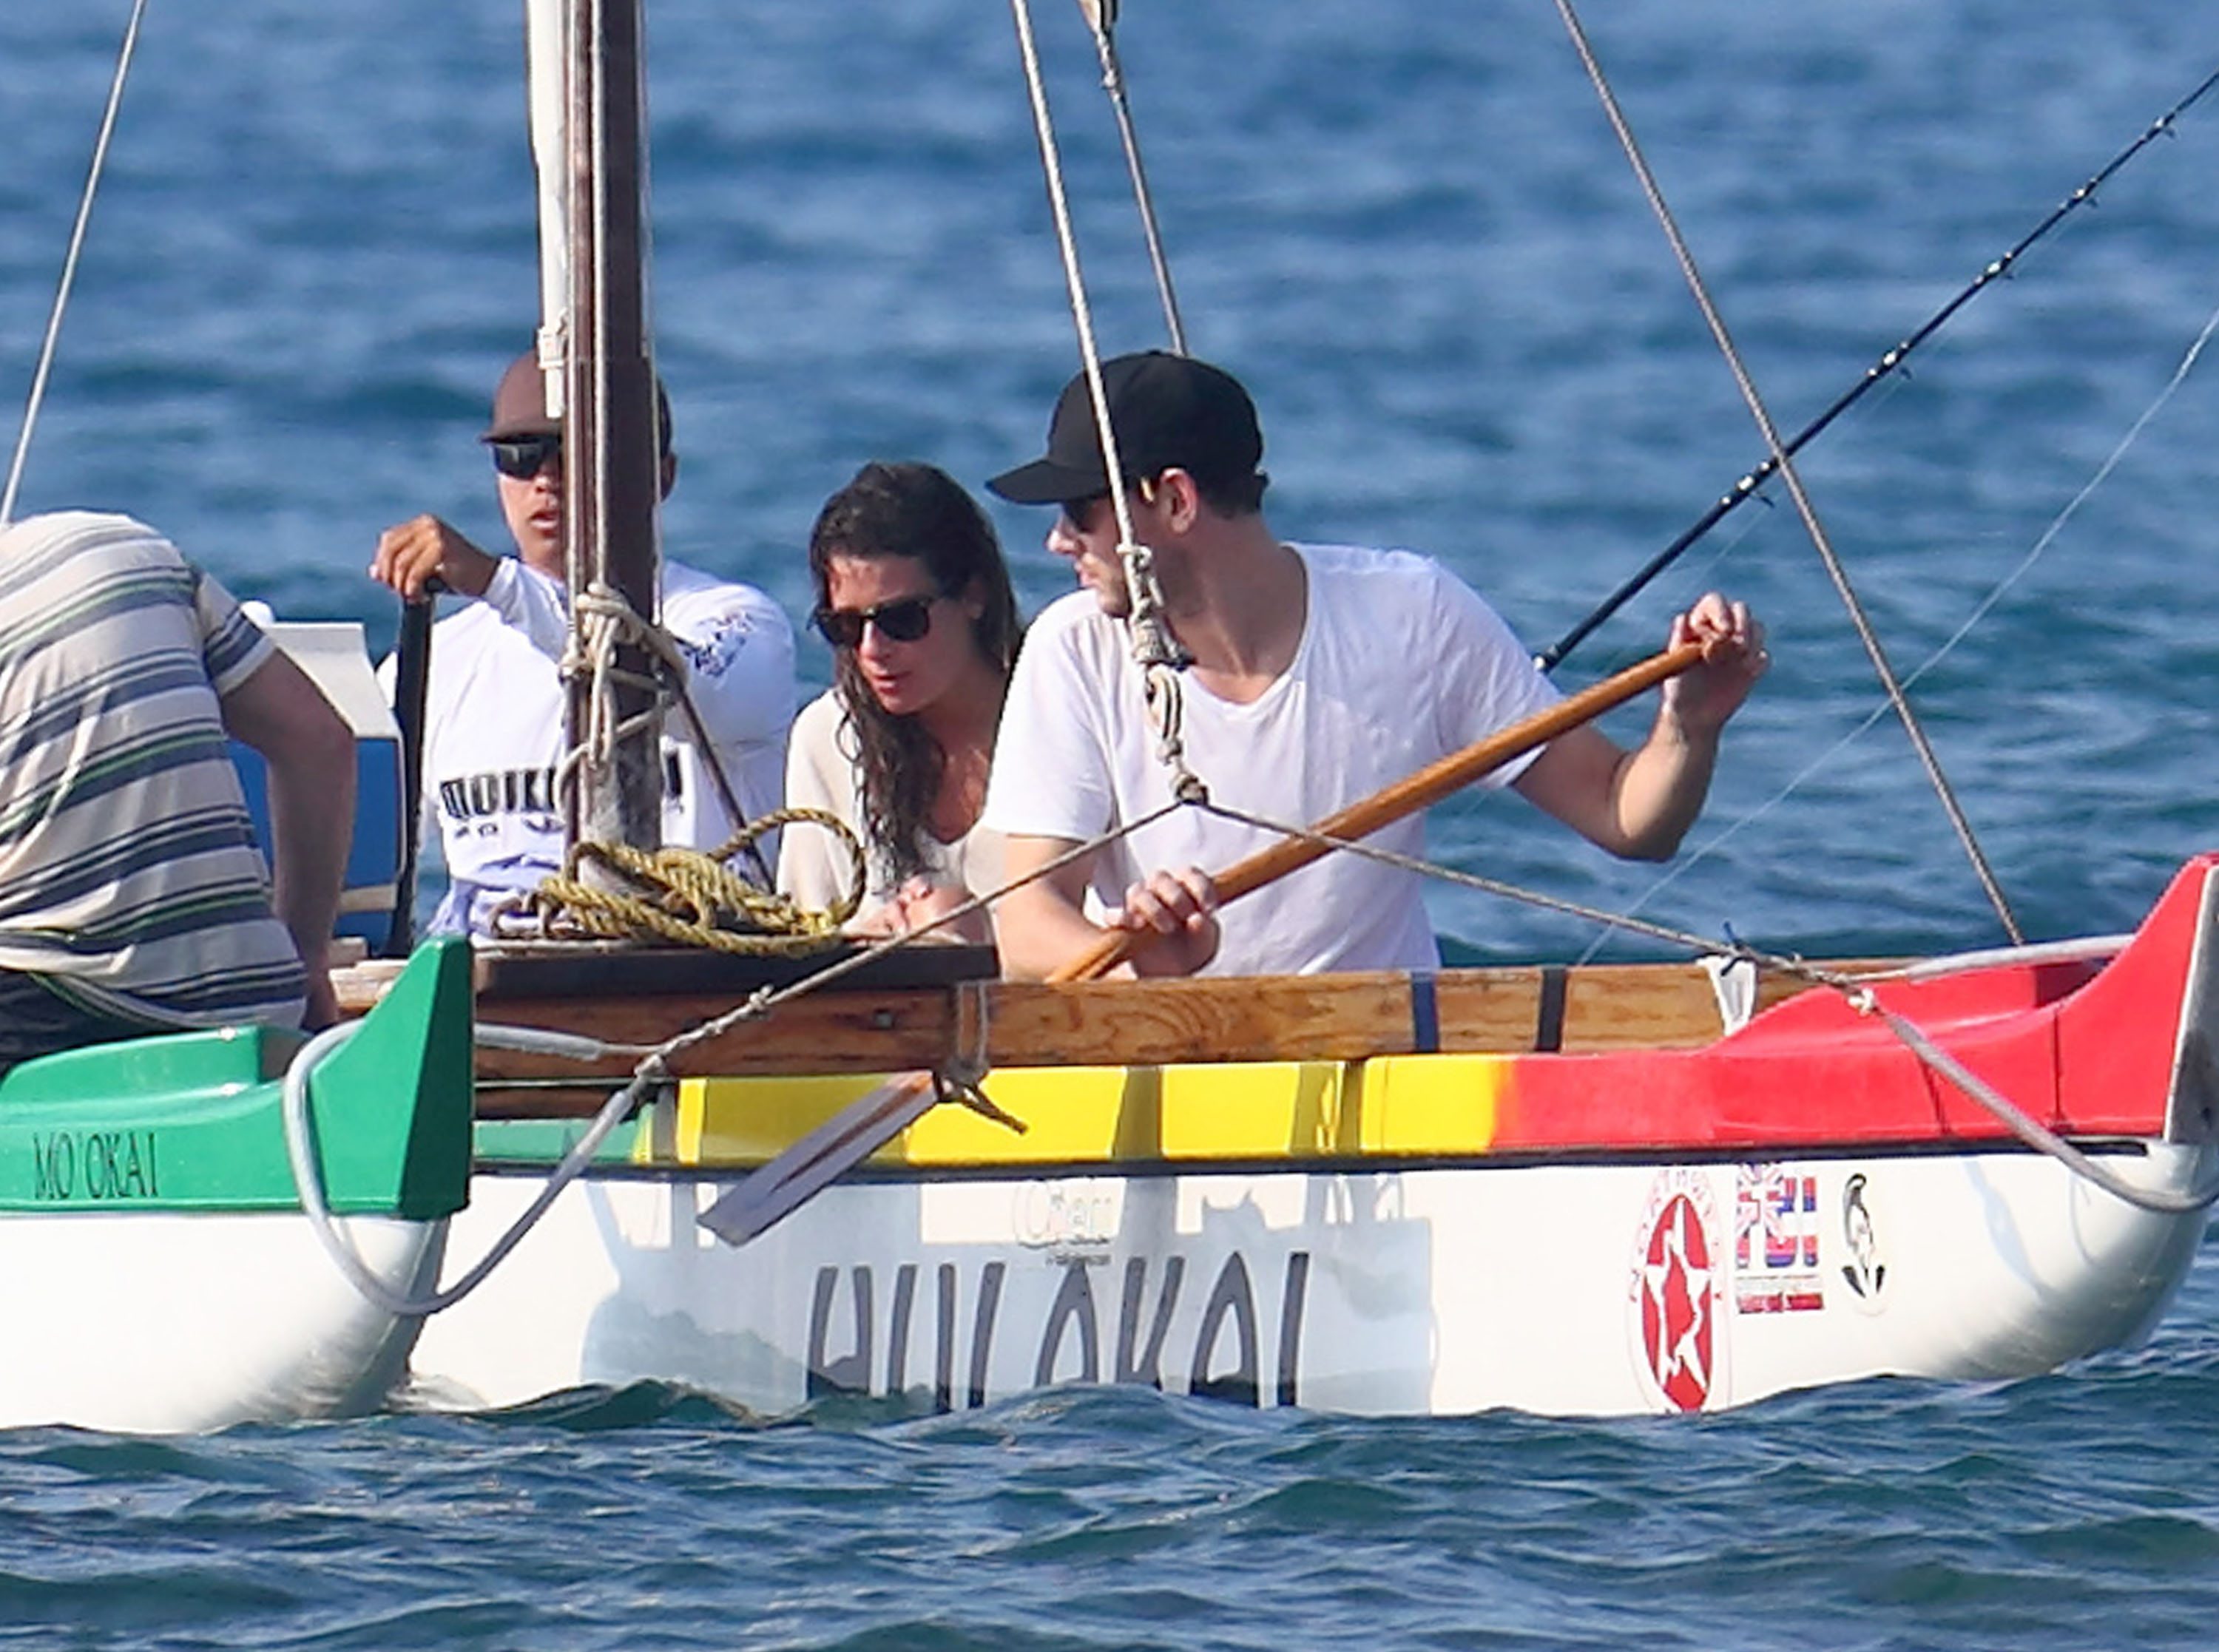 Lea Michele and Cory Monteith spent time together in a boat in Hawaii.